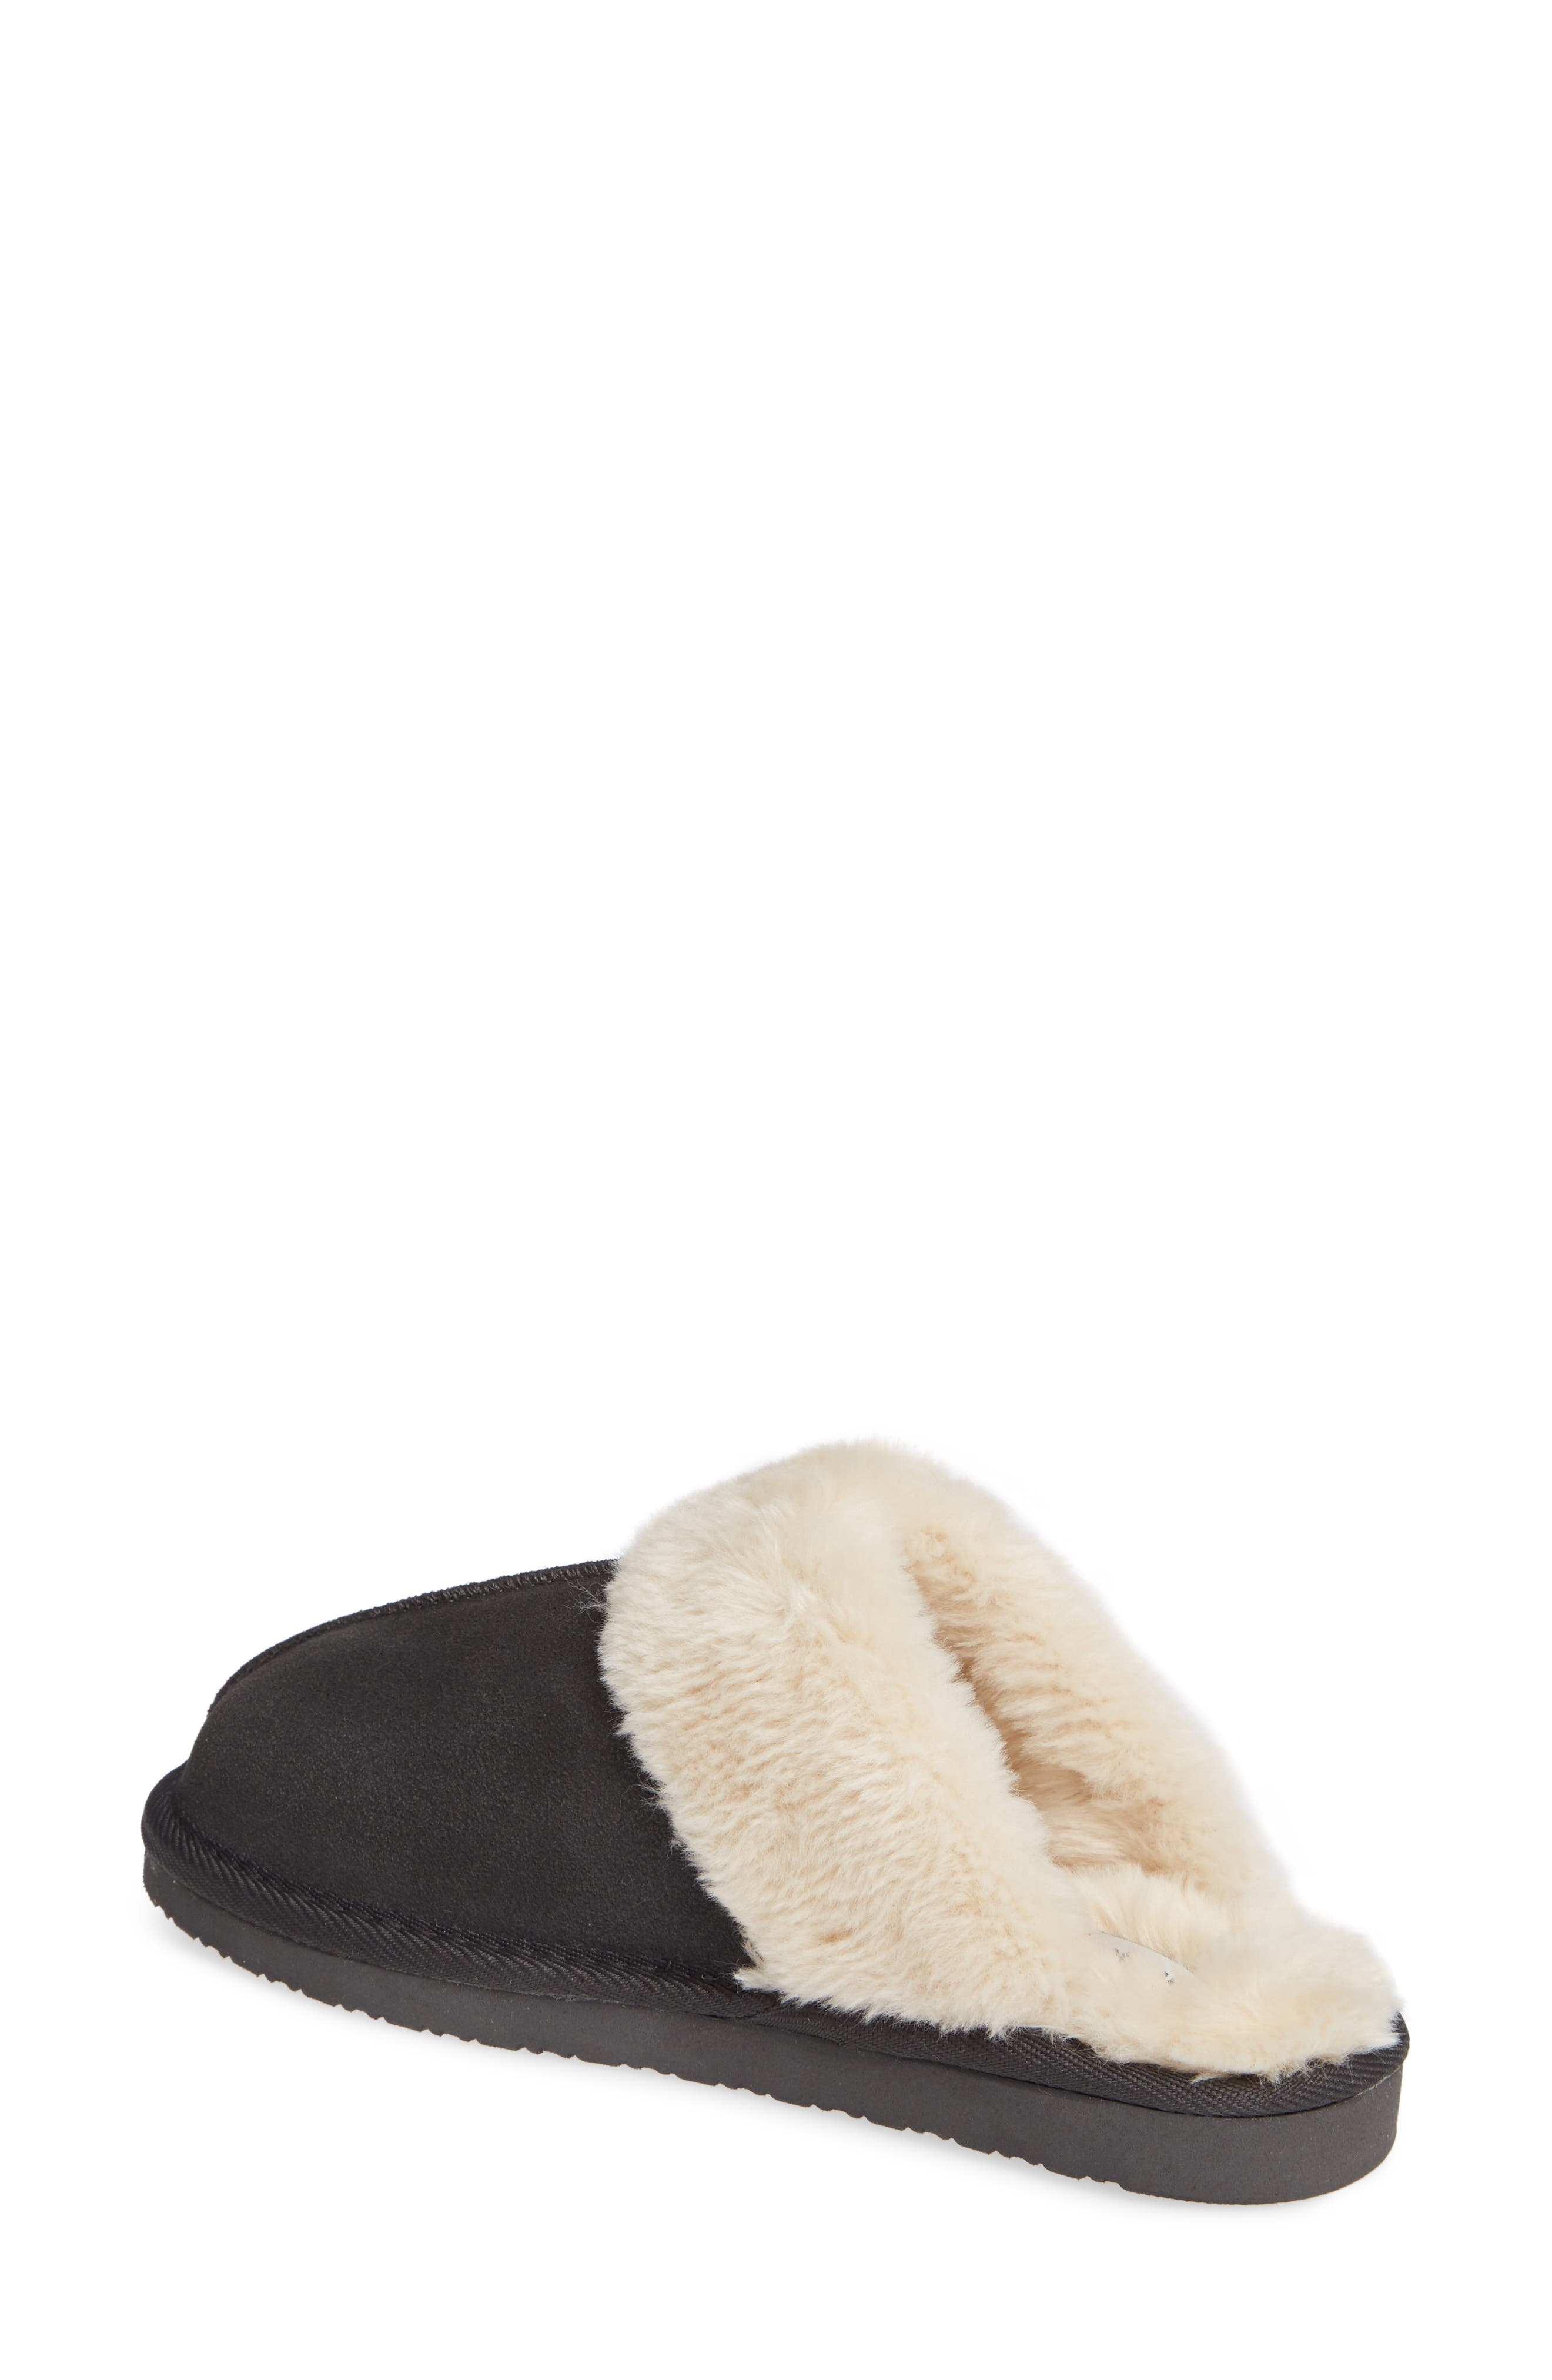 MINNETONKA, Mule Slipper, Alternate thumbnail 2, color, CHARCOAL SUEDE